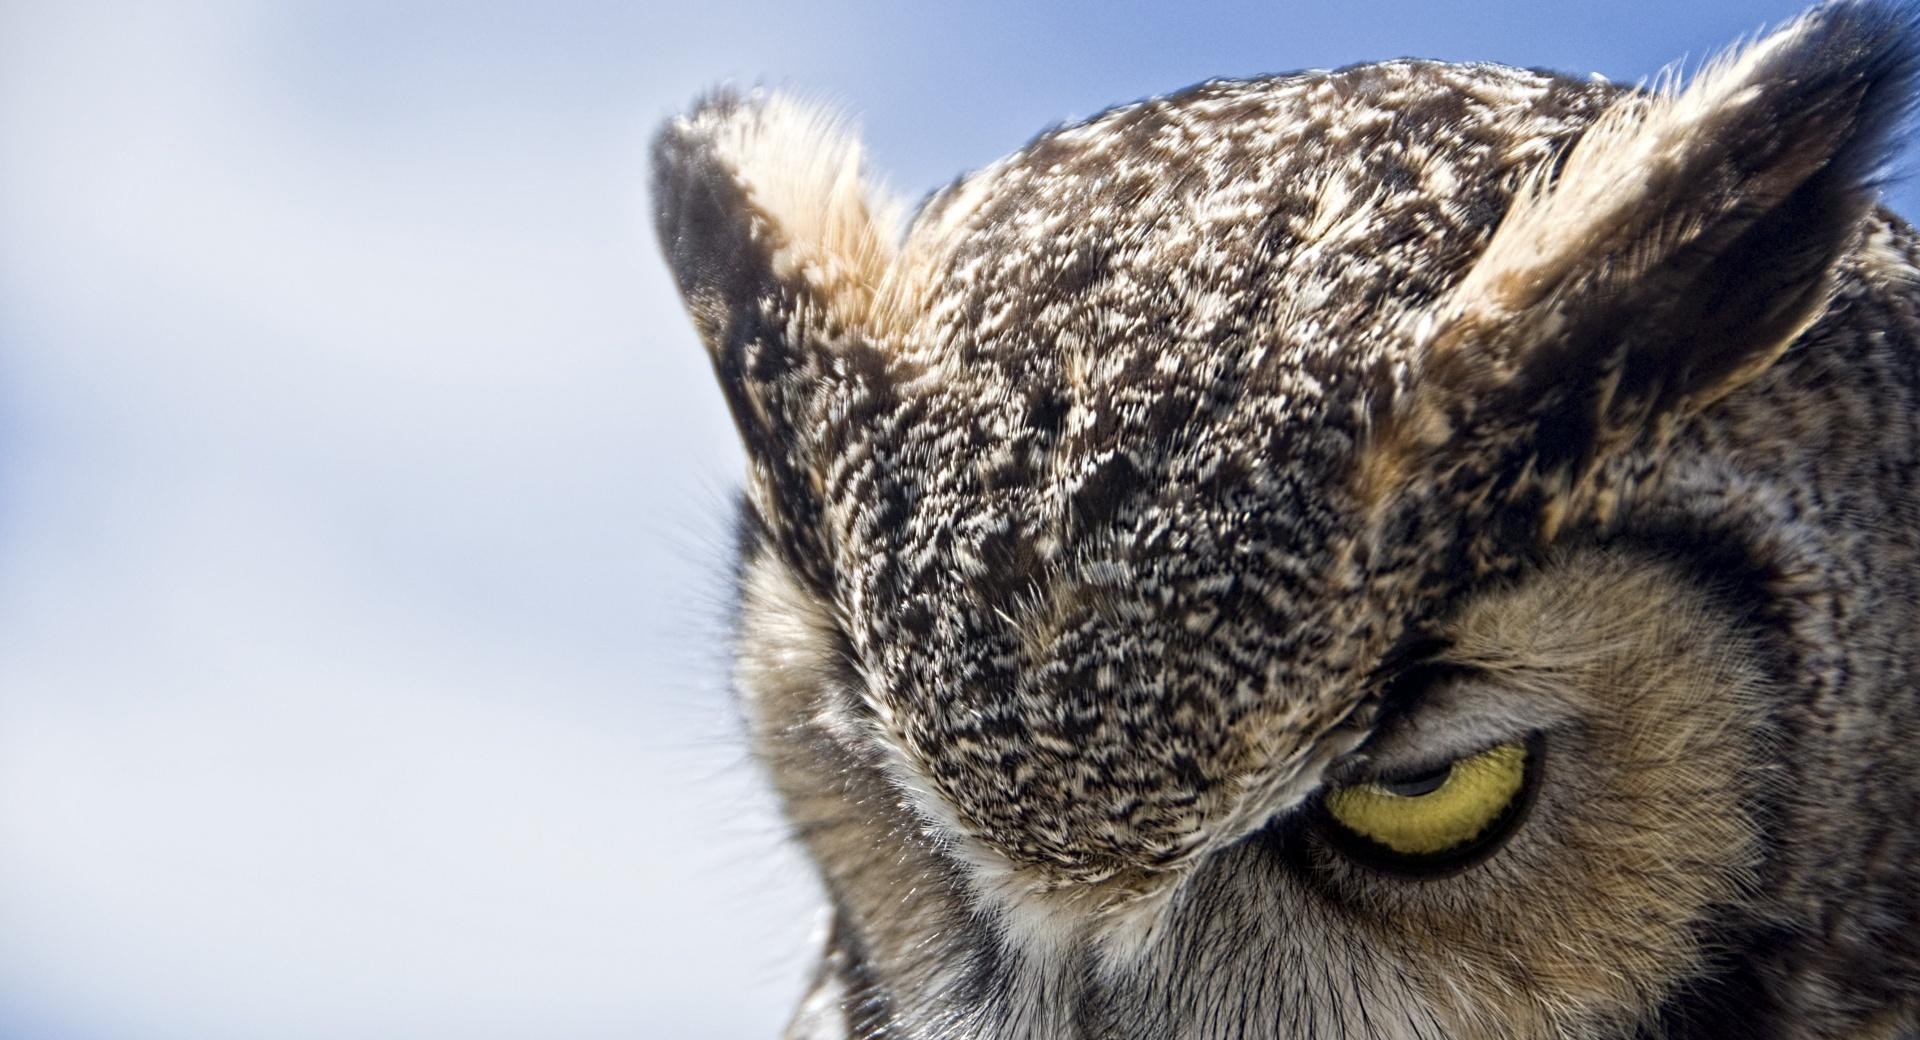 Great Horned Owl Sullen wallpapers HD quality